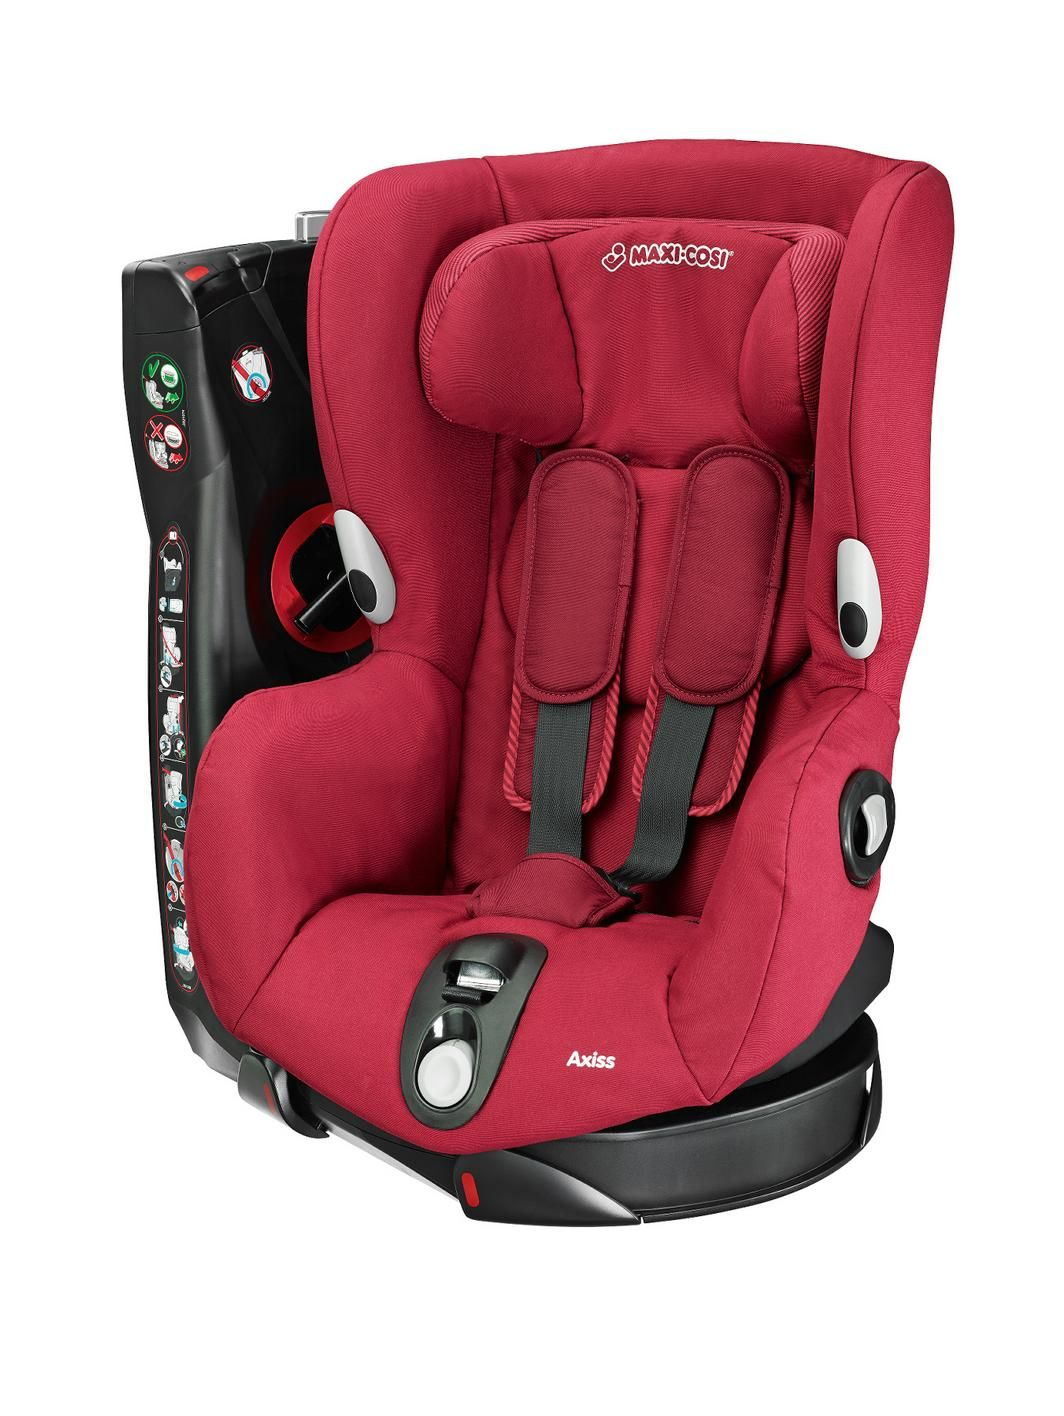 Very Womens Mens And Kids Fashion Furniture Electricals More Baby Car Seats Car Seats Toddler Car Seat